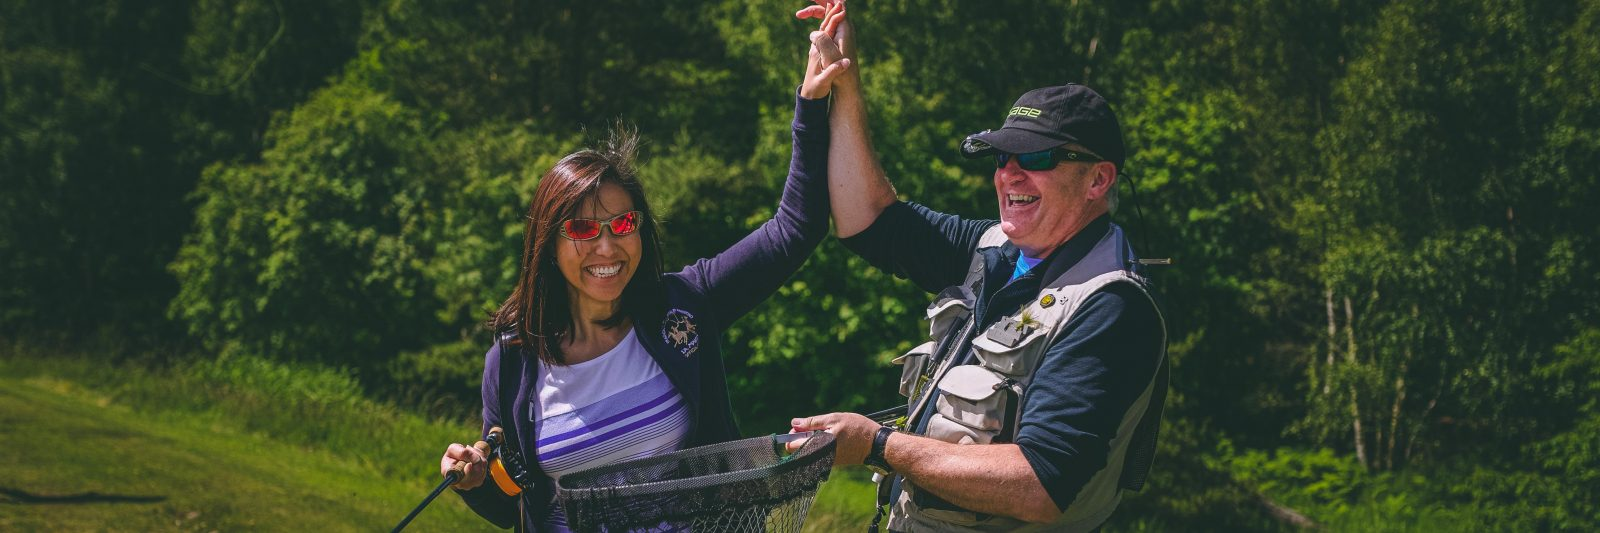 team building, fly fishing, events, unique, outdoors, corporate event, fishing for beginners